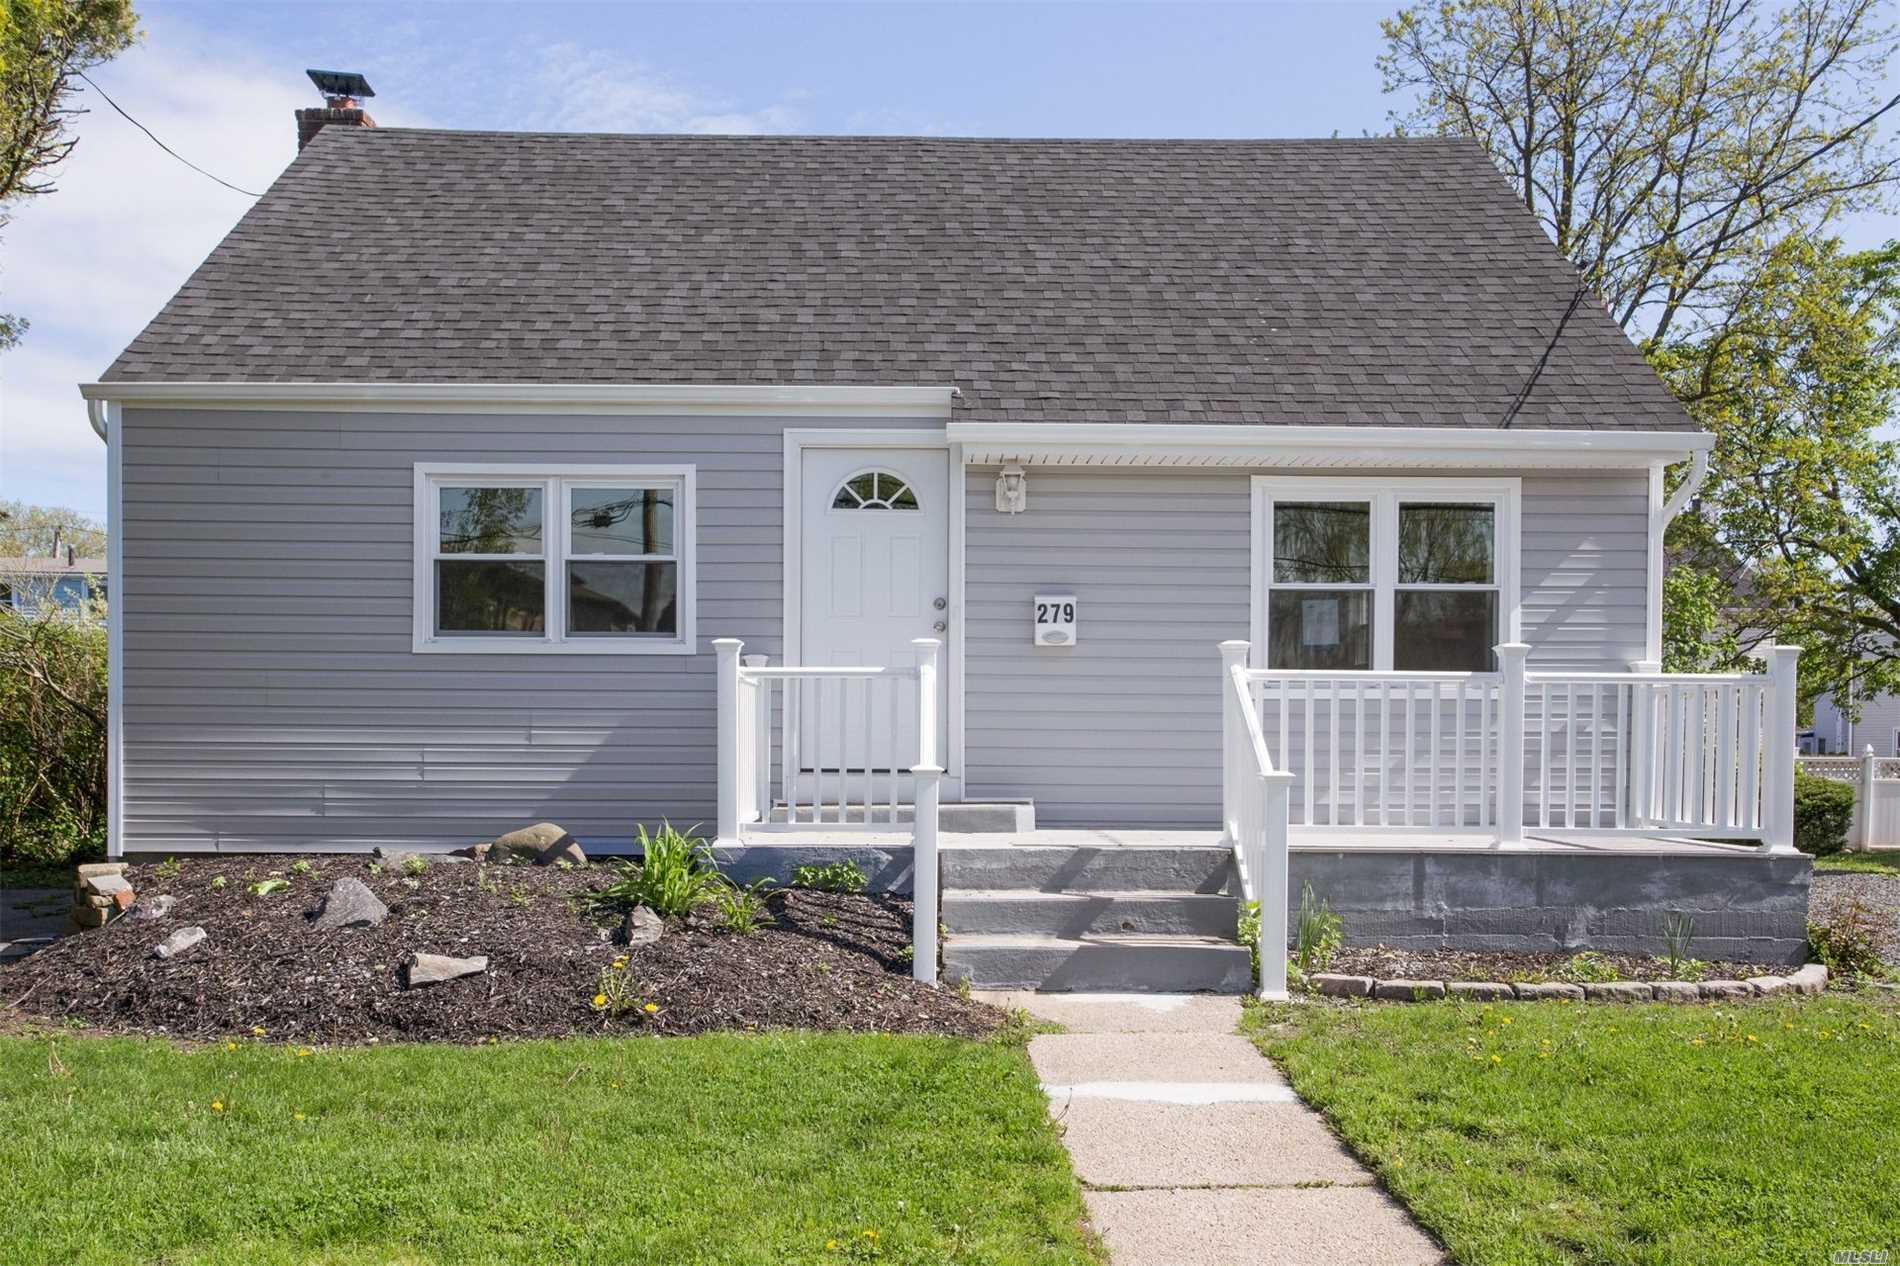 Beautifully Renovated Cape With Flawless Kitchen With SS Appliances, New Bathrooms, Spacious Backyard, CAC, Full Basement...The List Goes On And On! This One Is A No Brainer! If You're Looking For Your Dream Home, Look No Further!